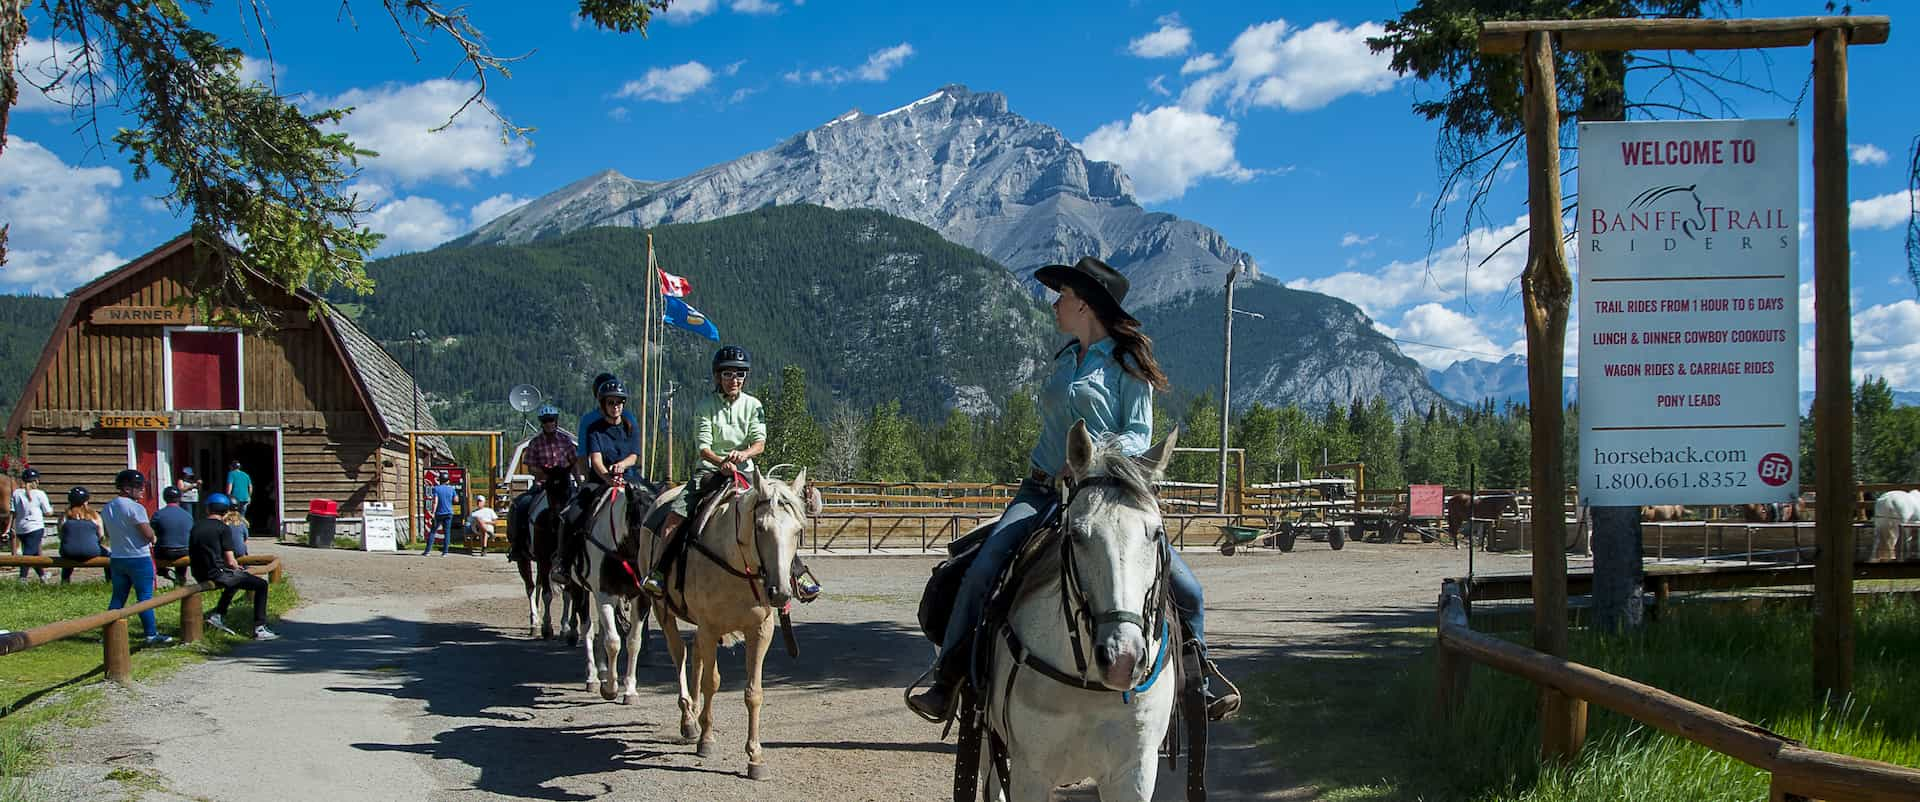 Take a guided Banff horseback ride with your friendly guide with Banff Trail Riders in the Canadian Rockies